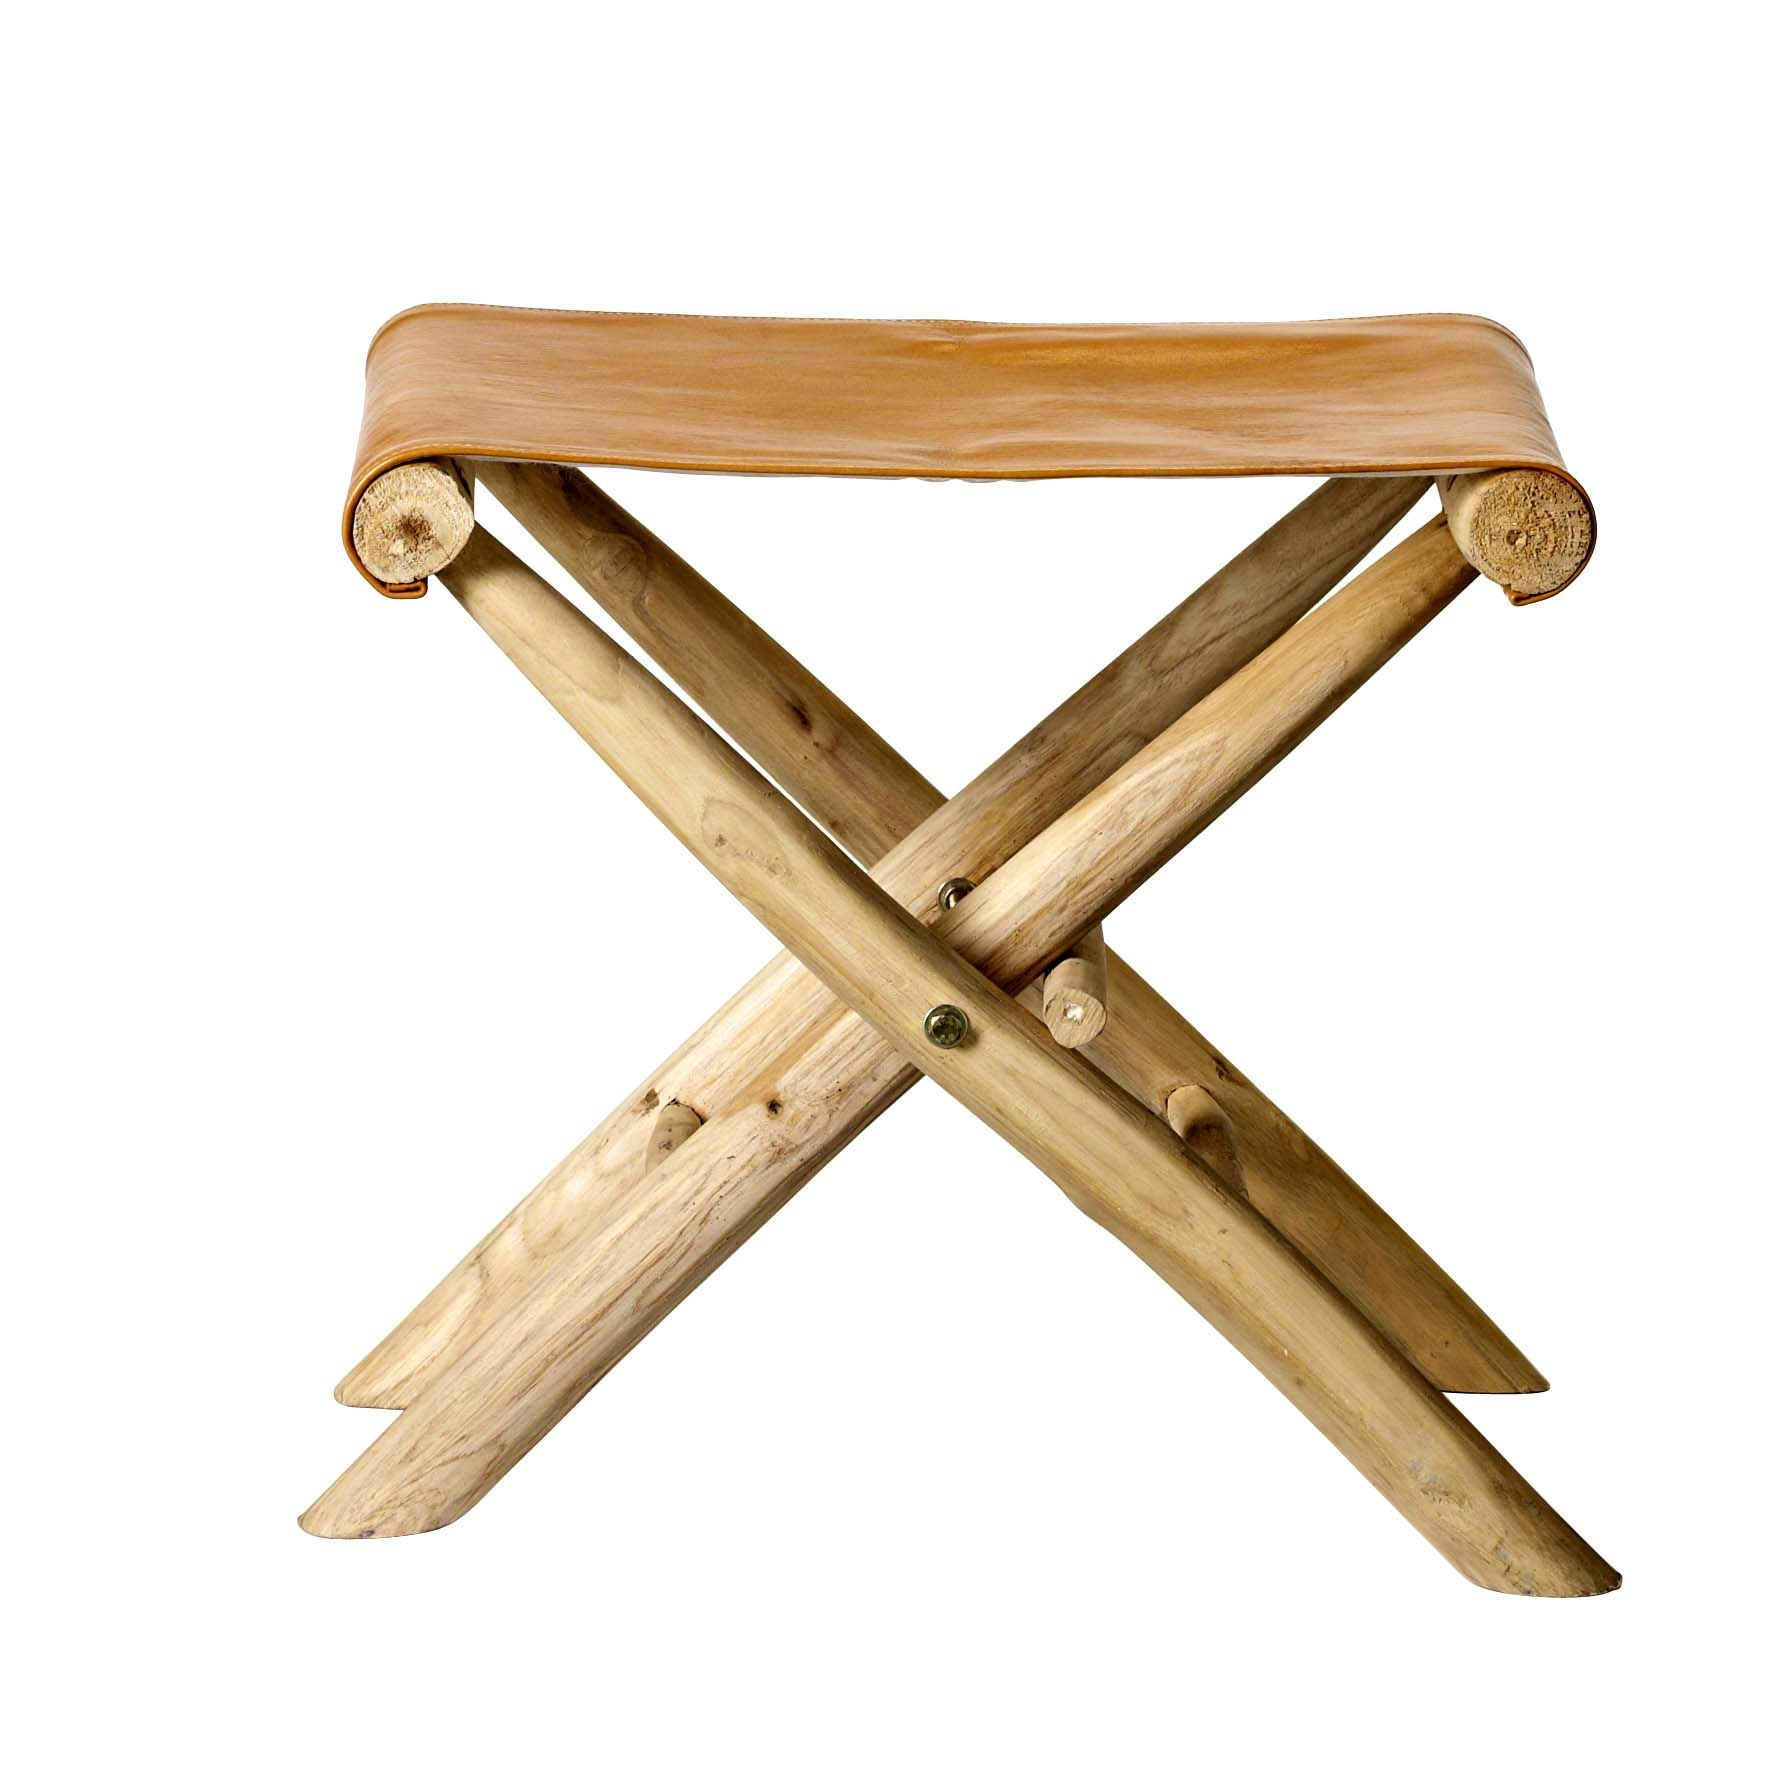 Pin By Ryan Pedersen On Furniture Ad: Fab Stool From Bloomingville. Natural Wood With Leather